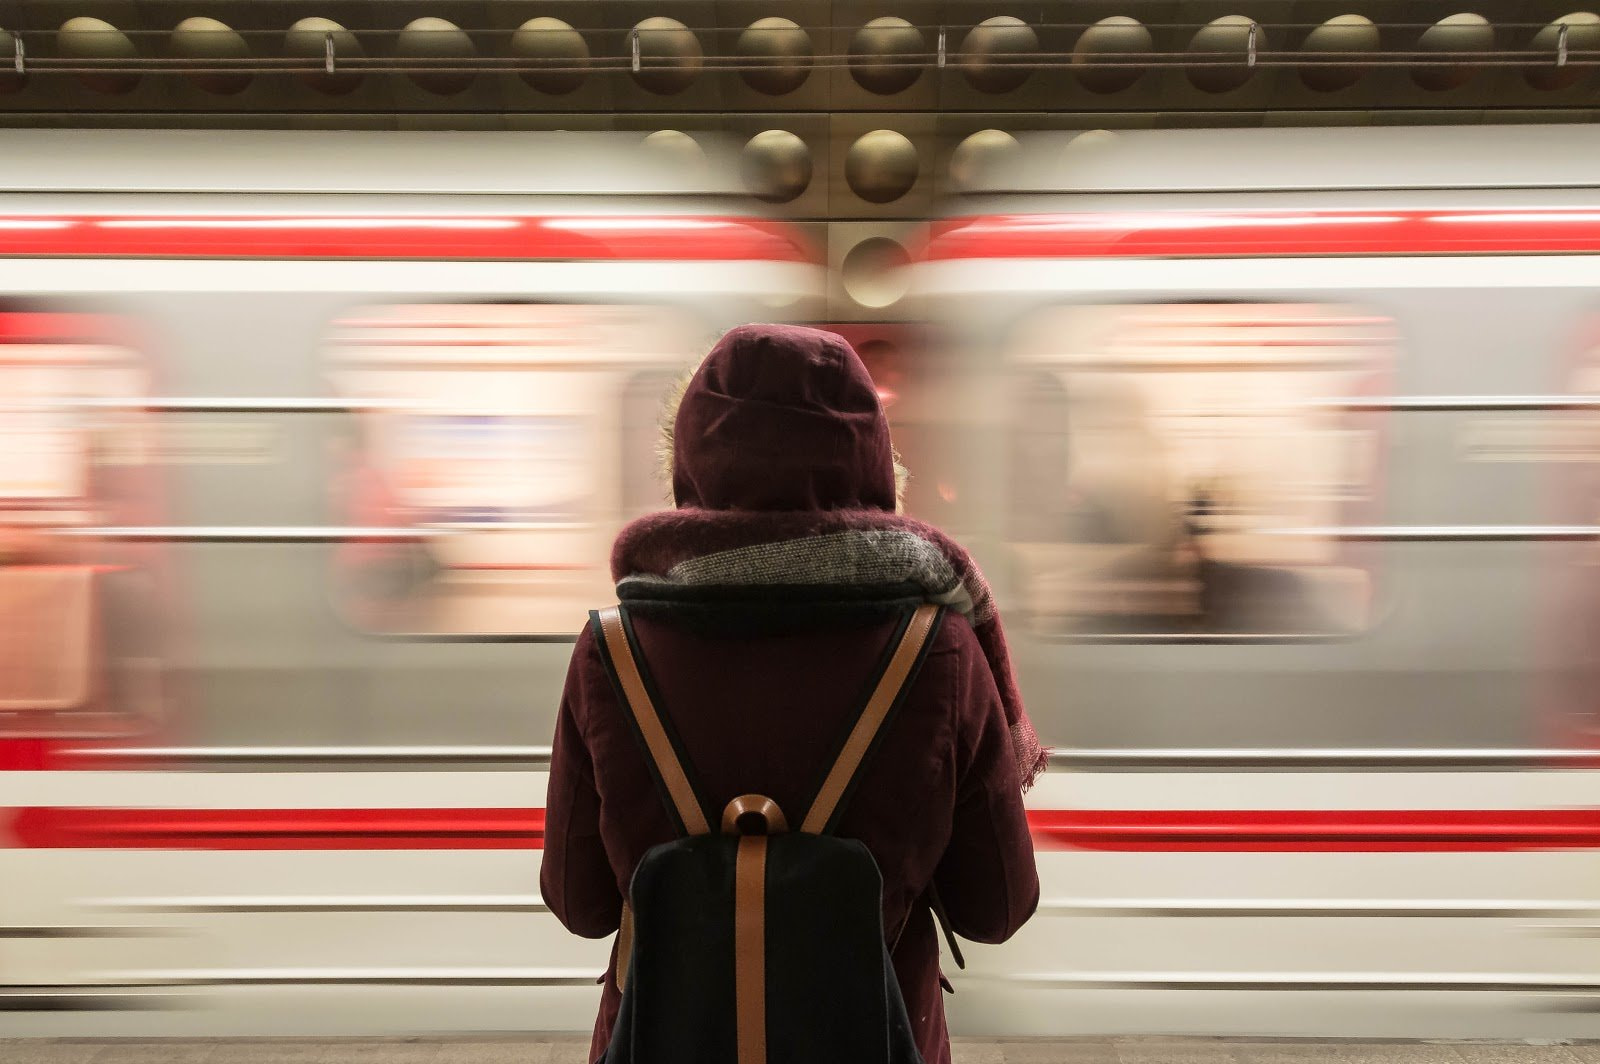 Person in a hoodie with a blurred train passing by by Fabrizio Verrechia